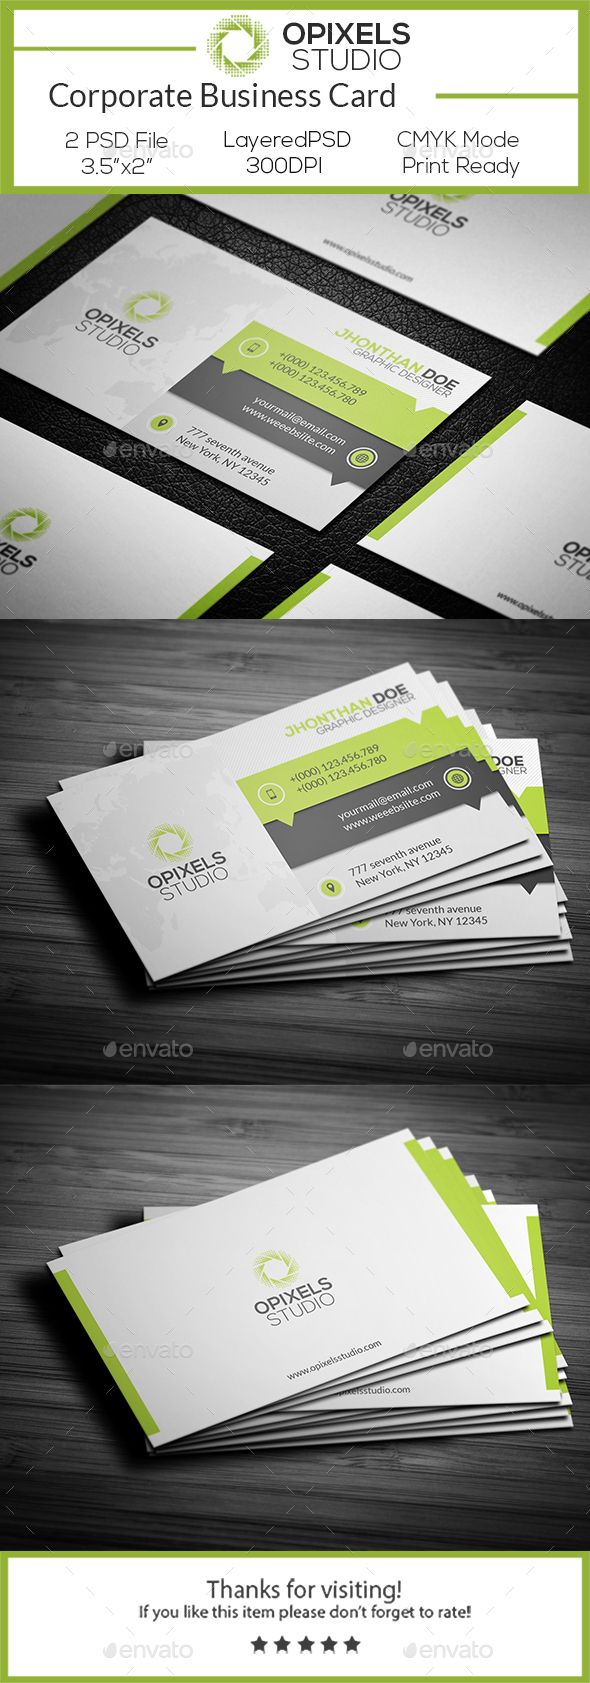 Corporate Business Card Photoshop Psd Personal Clean Available